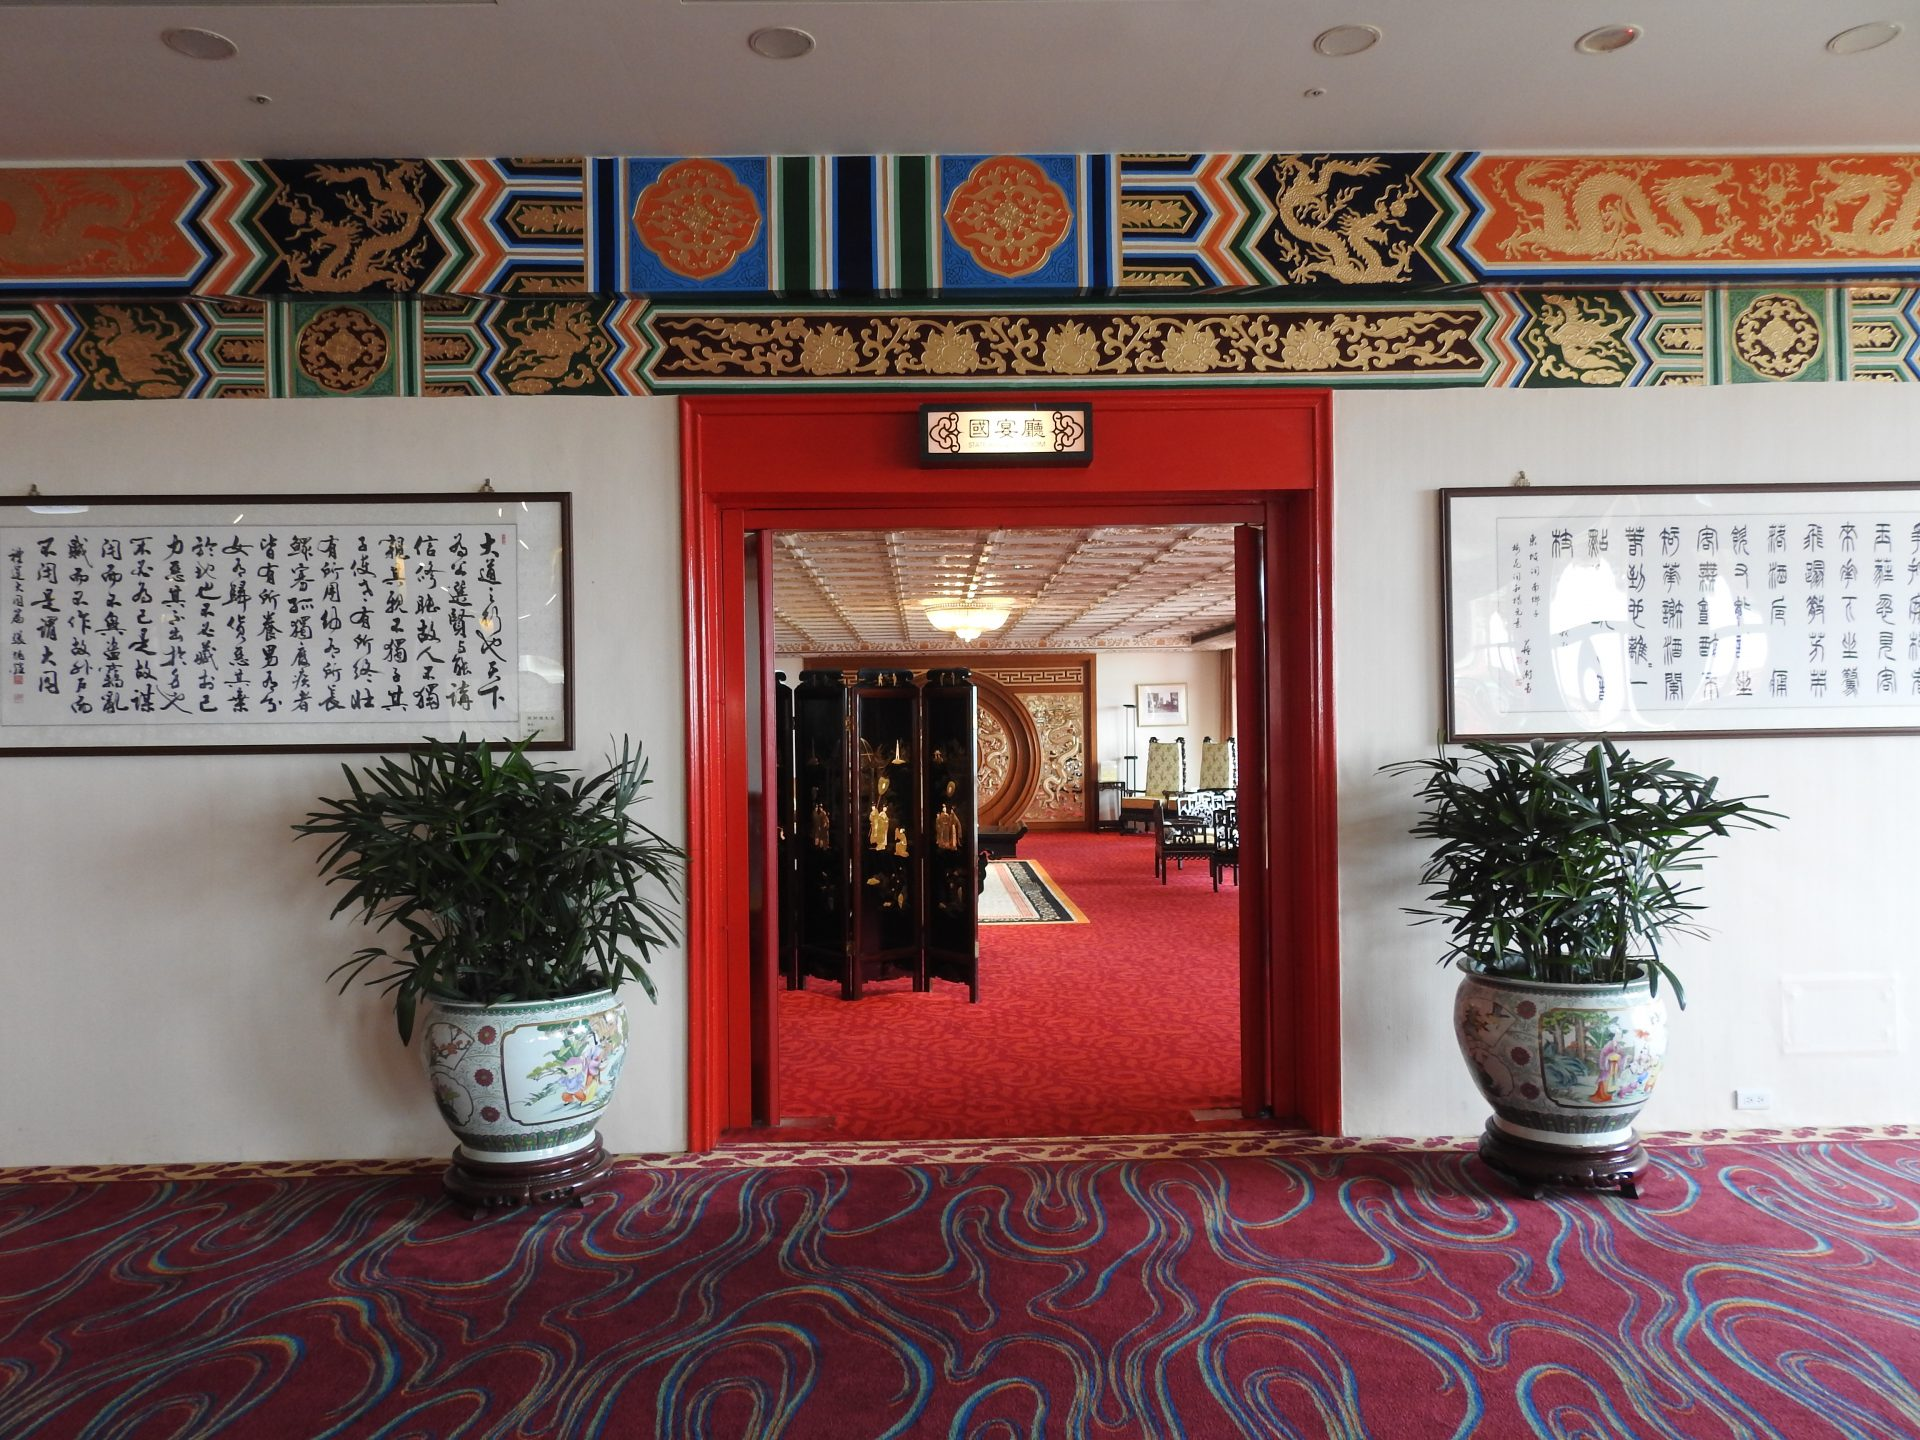 The State Banquet Hall with a birds-eye-view of the Keelung River used to be the location for ex-president Chiang Kai-shek and Madame Soong May-ling to host state banquets in honor of the visiting heads of other countries. (Image: Billy Shyu/ Vision Times)